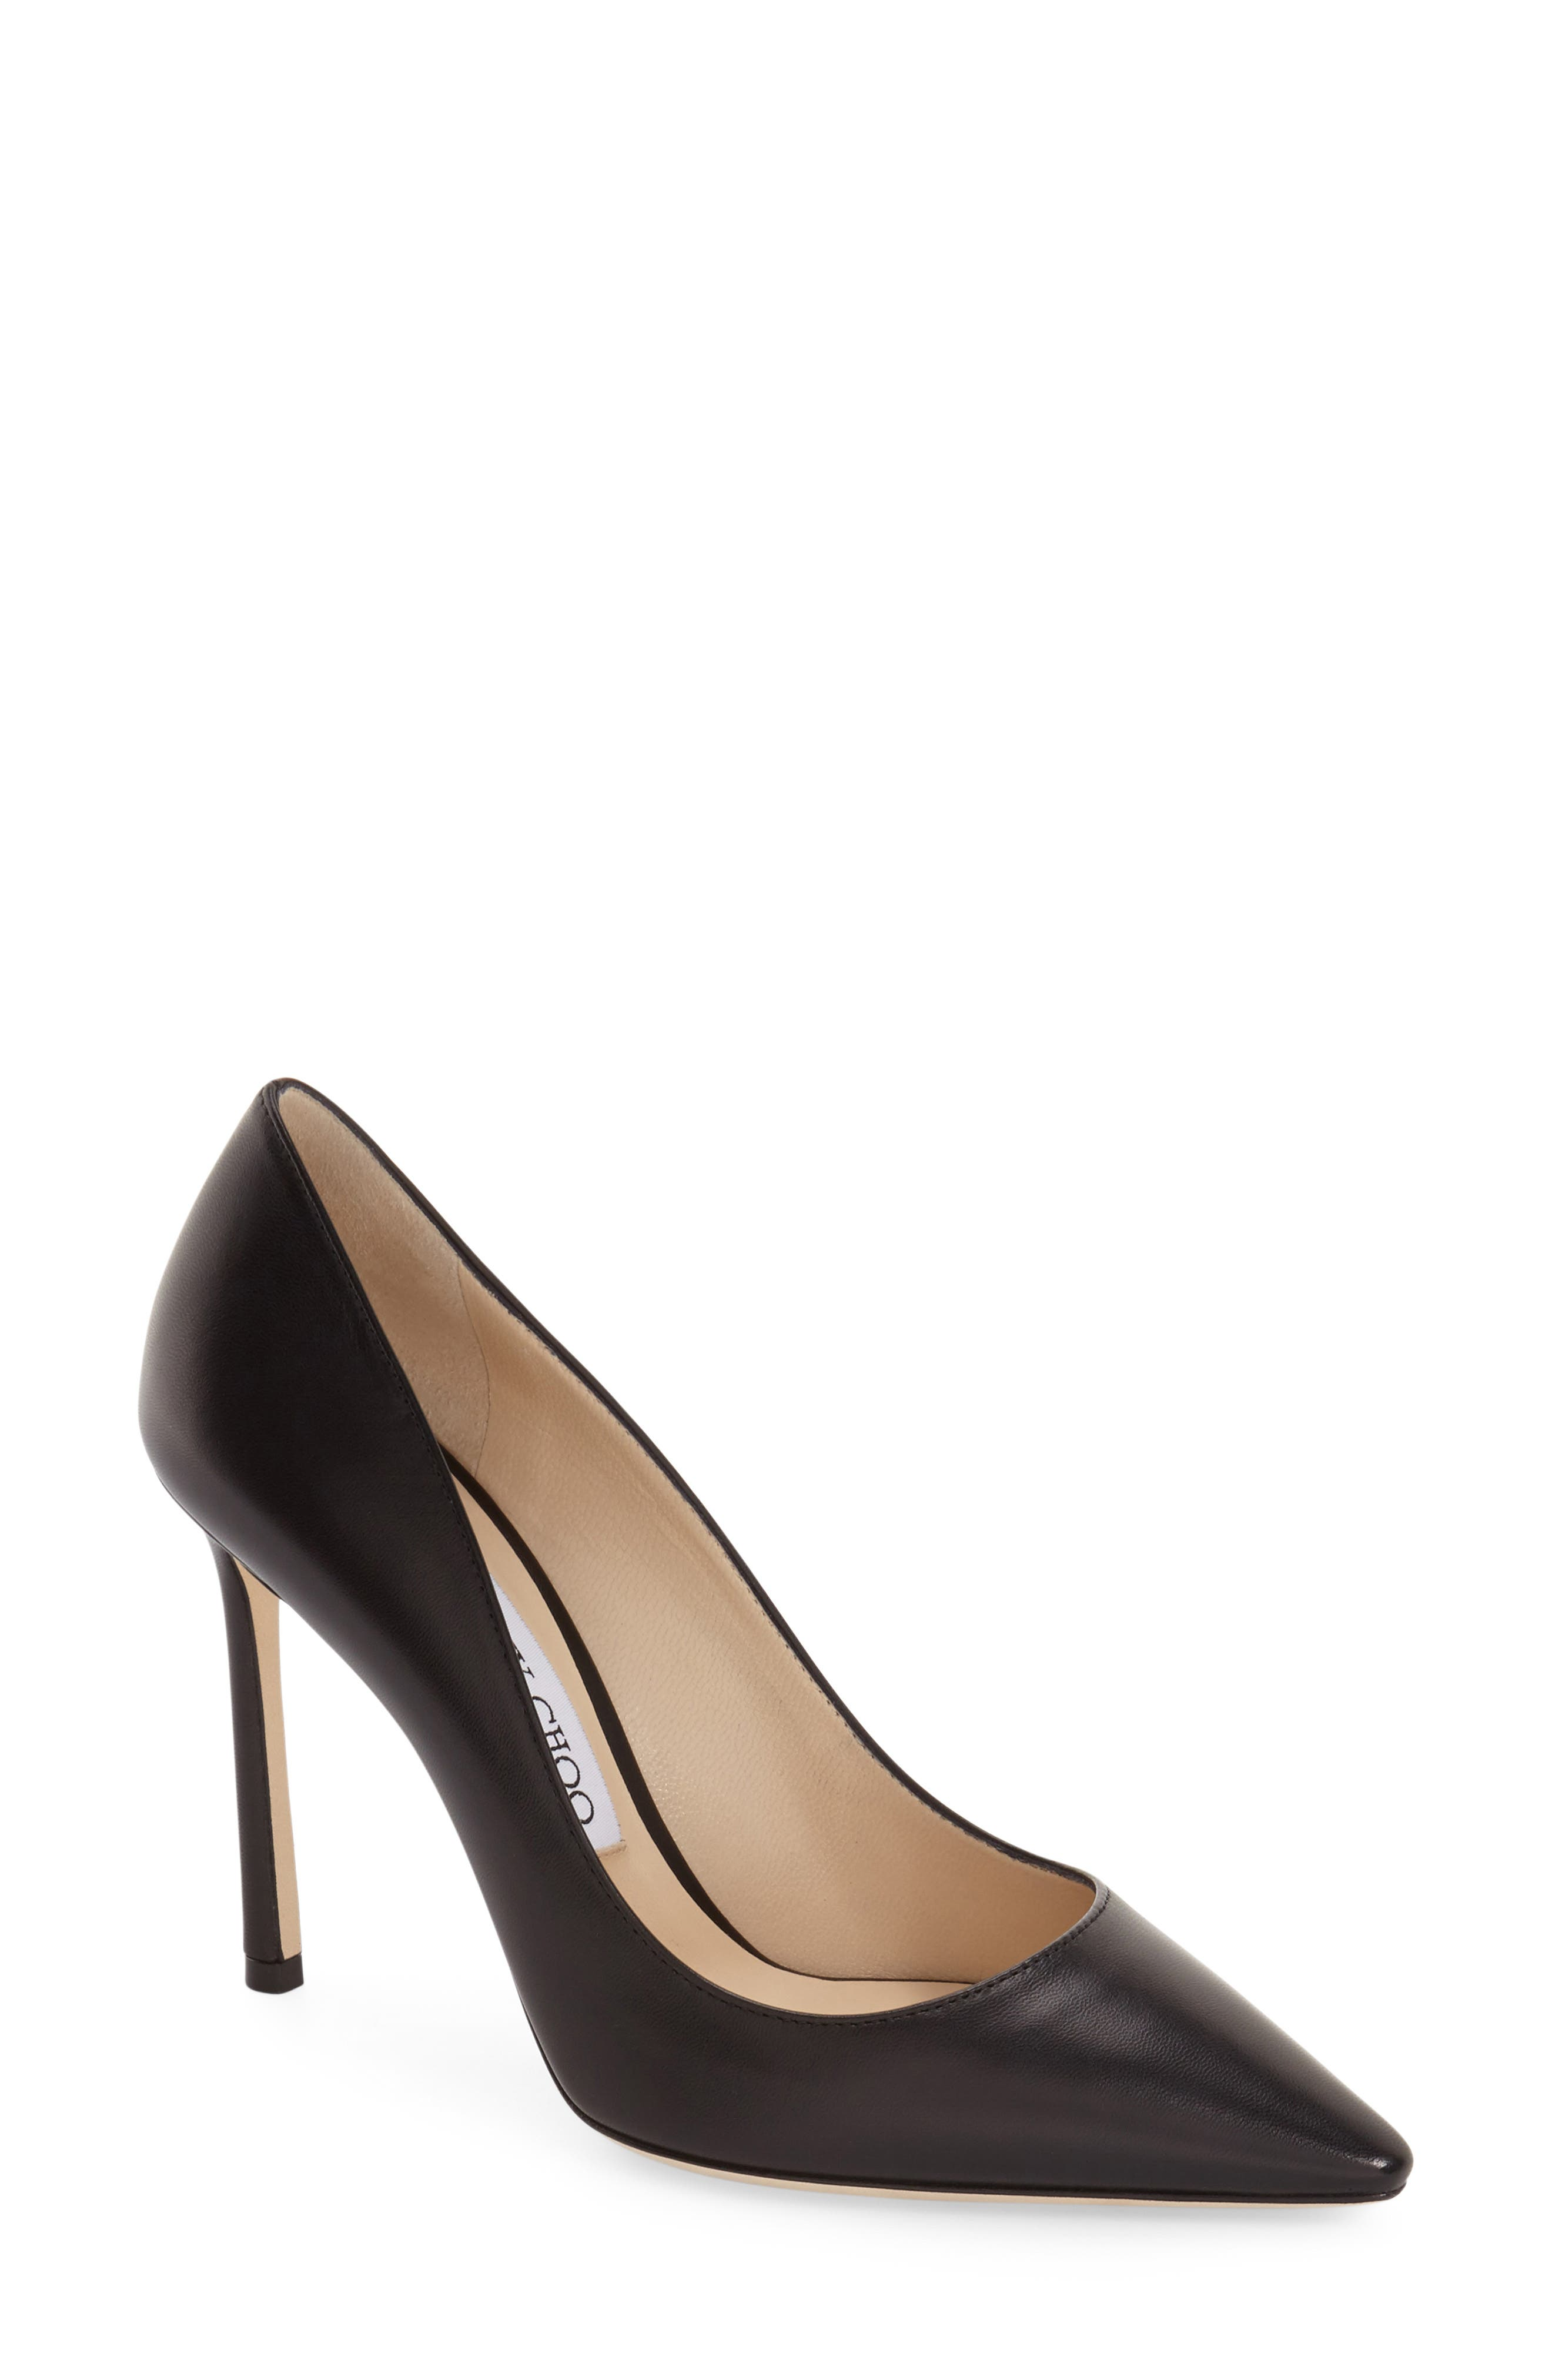 'Romy' Pointy Toe Pump,                         Main,                         color, BLACK LEATHER